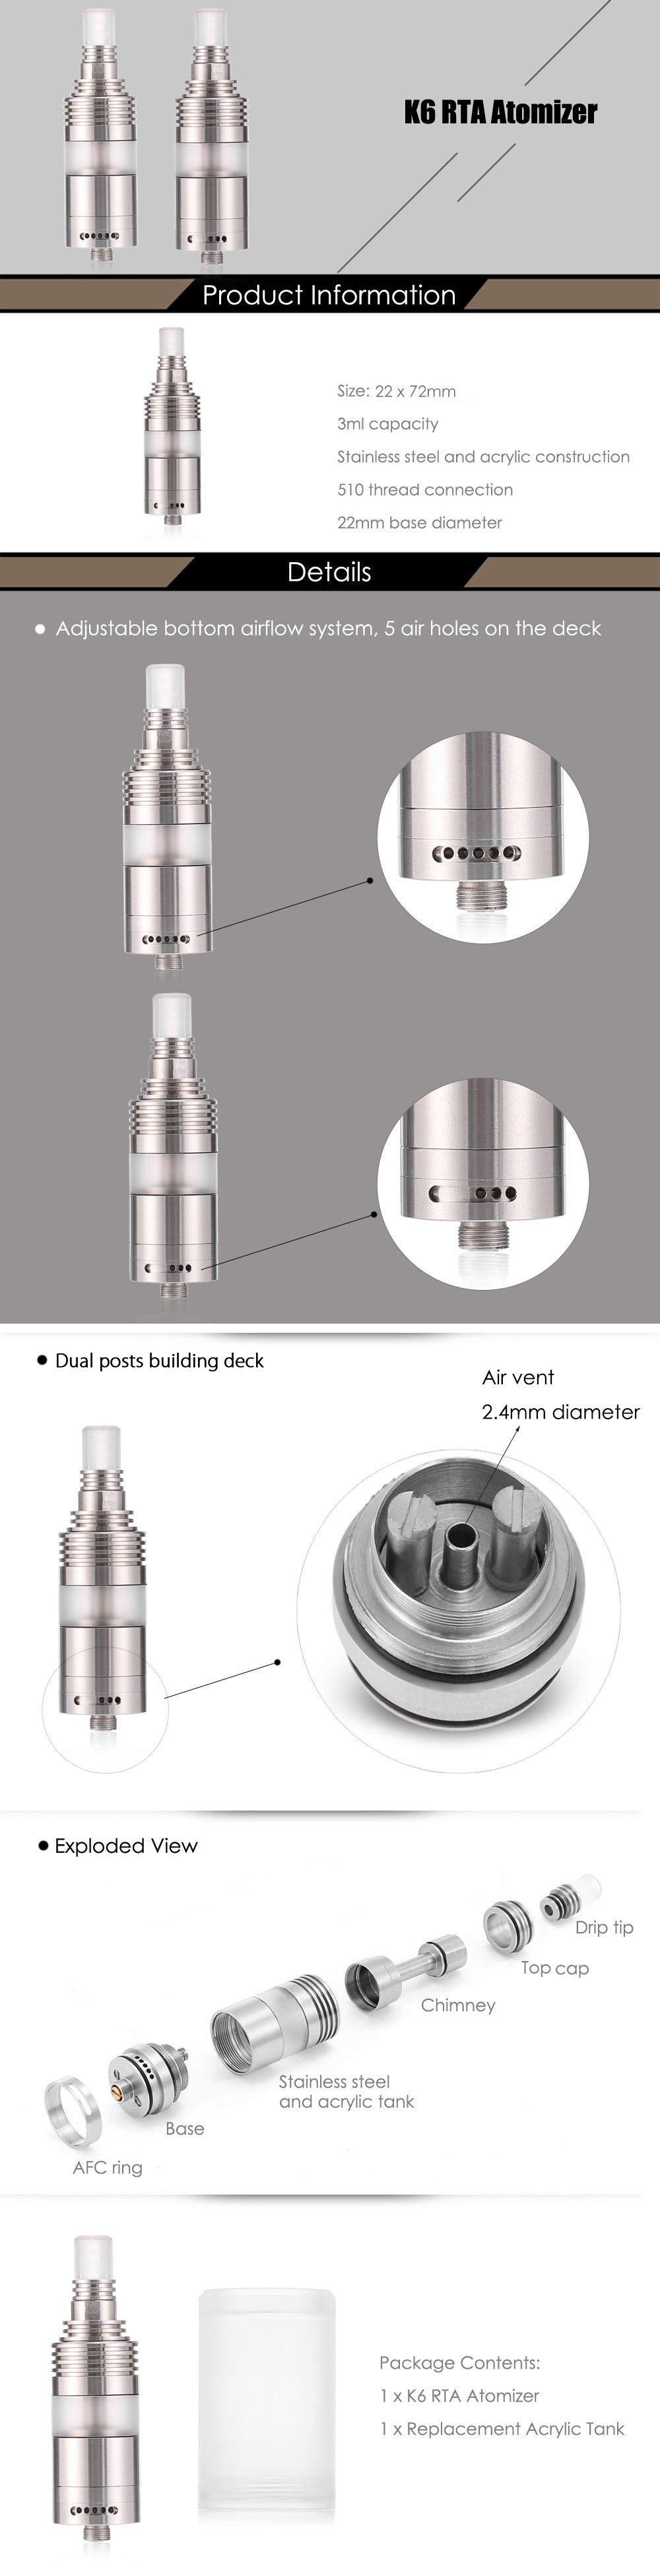 K6 RTA 3ml E Cigarette Rebuildable Tank Atomizer with Dual Posts Deck / Bottom Adjustable Airholes